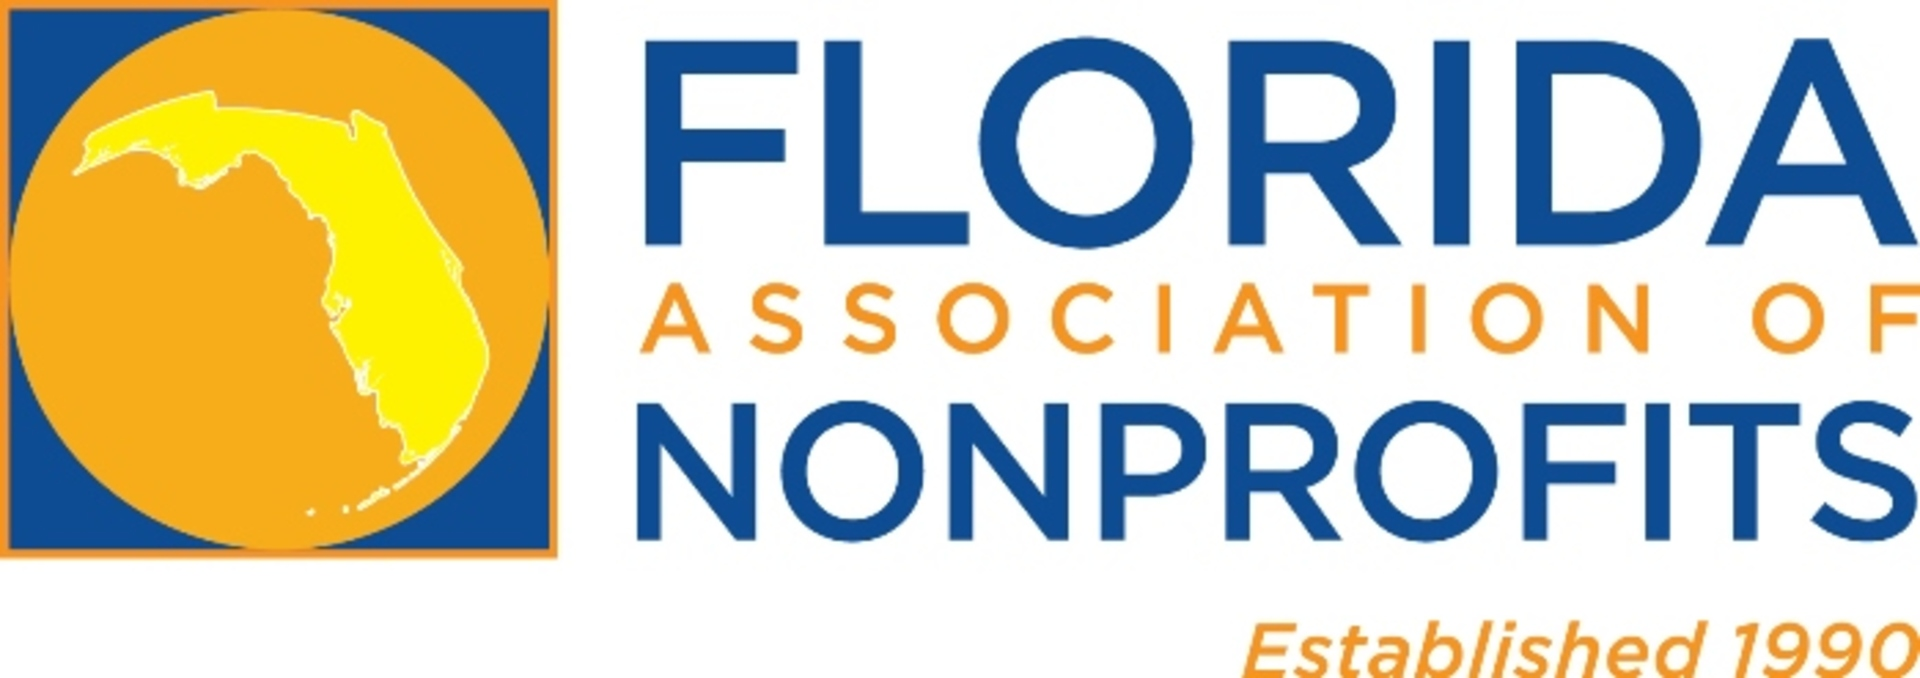 Florida Nonprofits\' Nonprofit Networking Event and Meet & Greet at the Iconic Pier Top at Pier 66